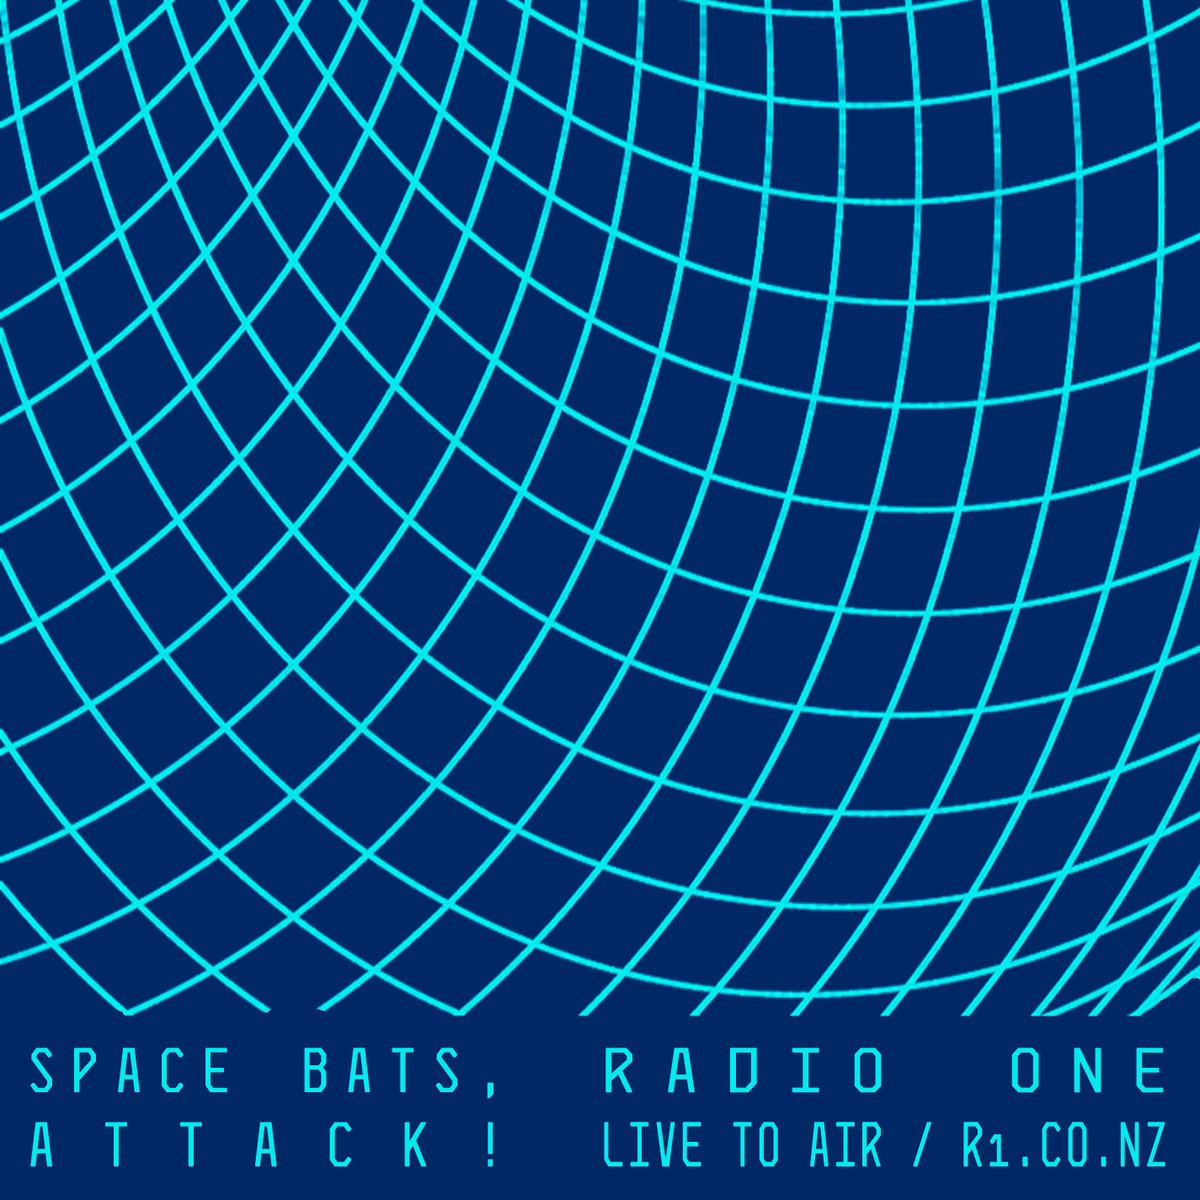 Radio One / Live To Air | Space Bats, Attack!